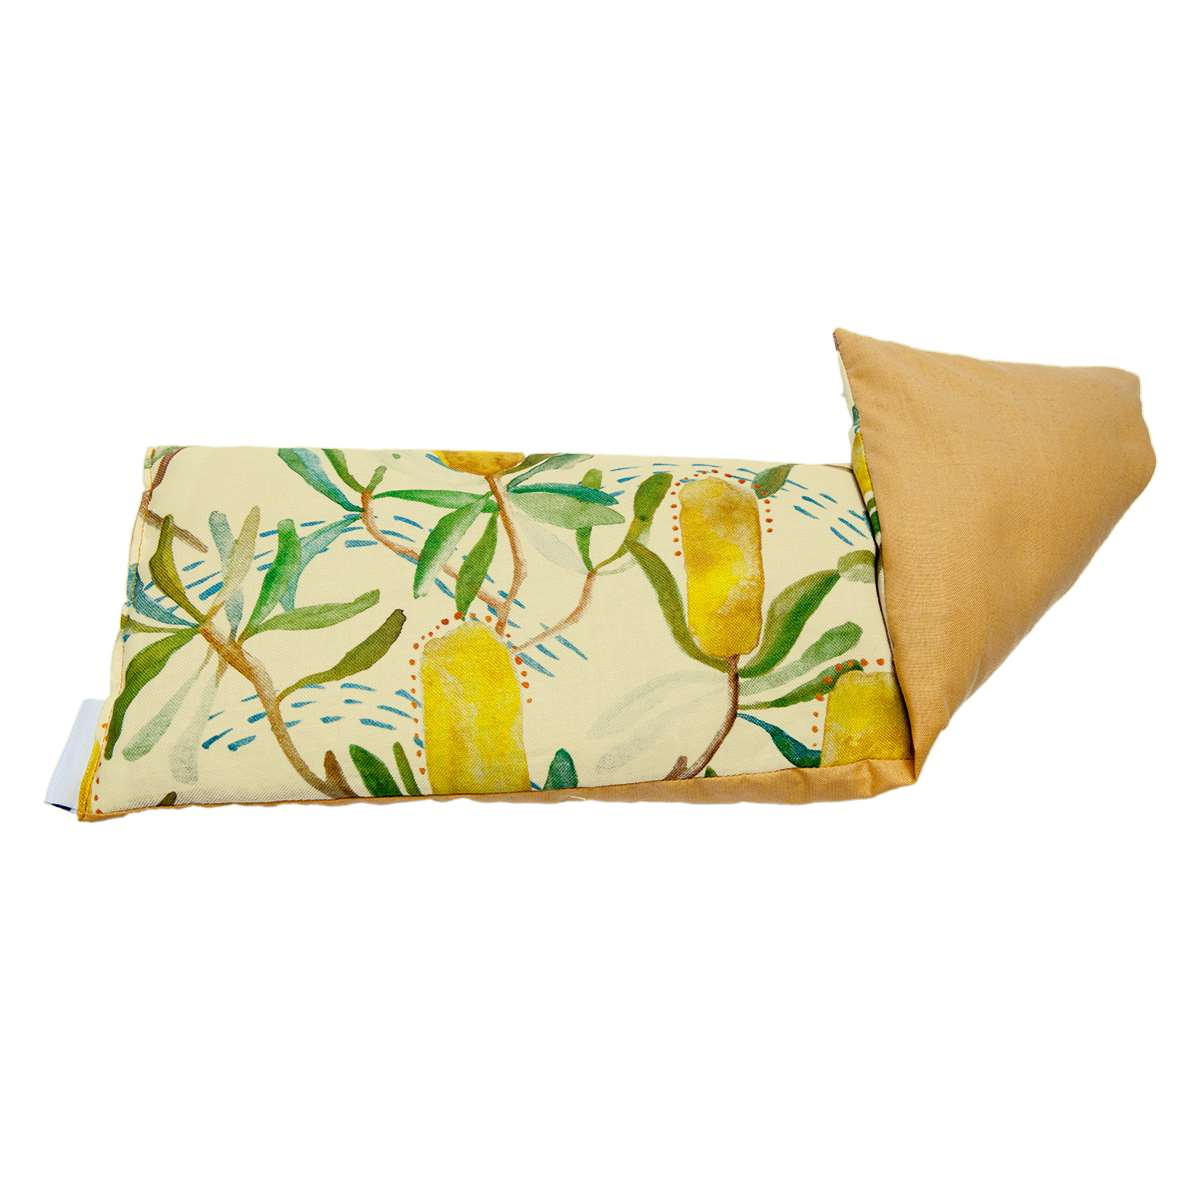 Wheatbags Love Heat Pack - Banksia - Heat Pack - Throw Some Seeds - Australian gardening gifts and eco products online!